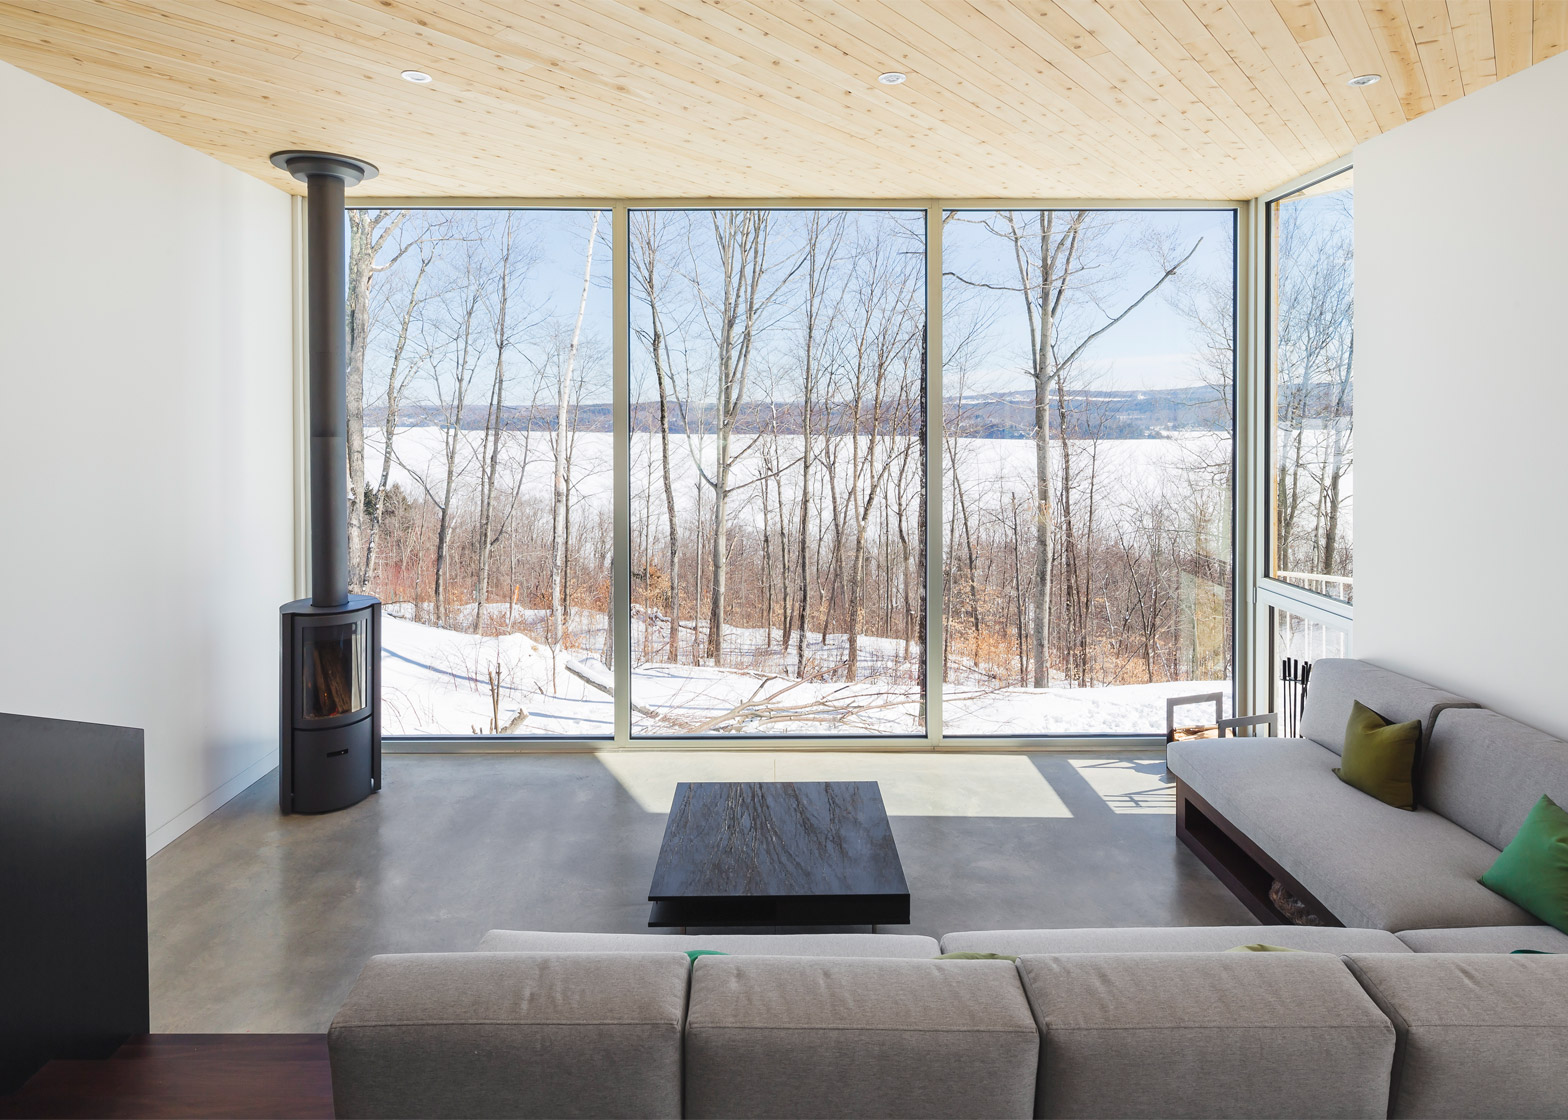 Quebec home by MU Architecture blends in with snowy terrain